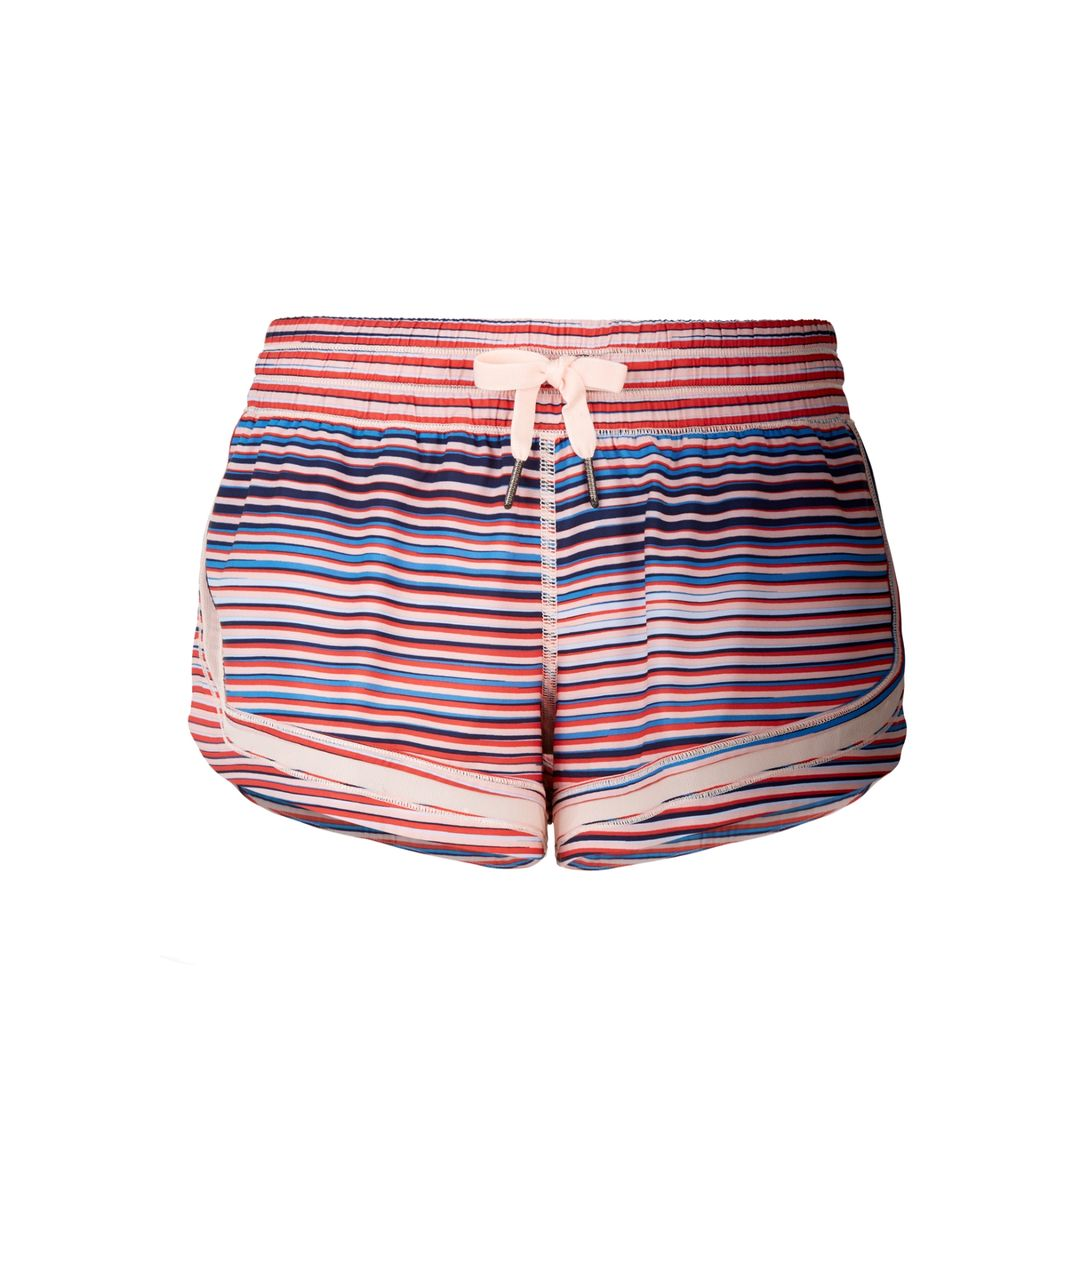 Lululemon Make A Move Short - Twisted Dune Minty Pink Alarming